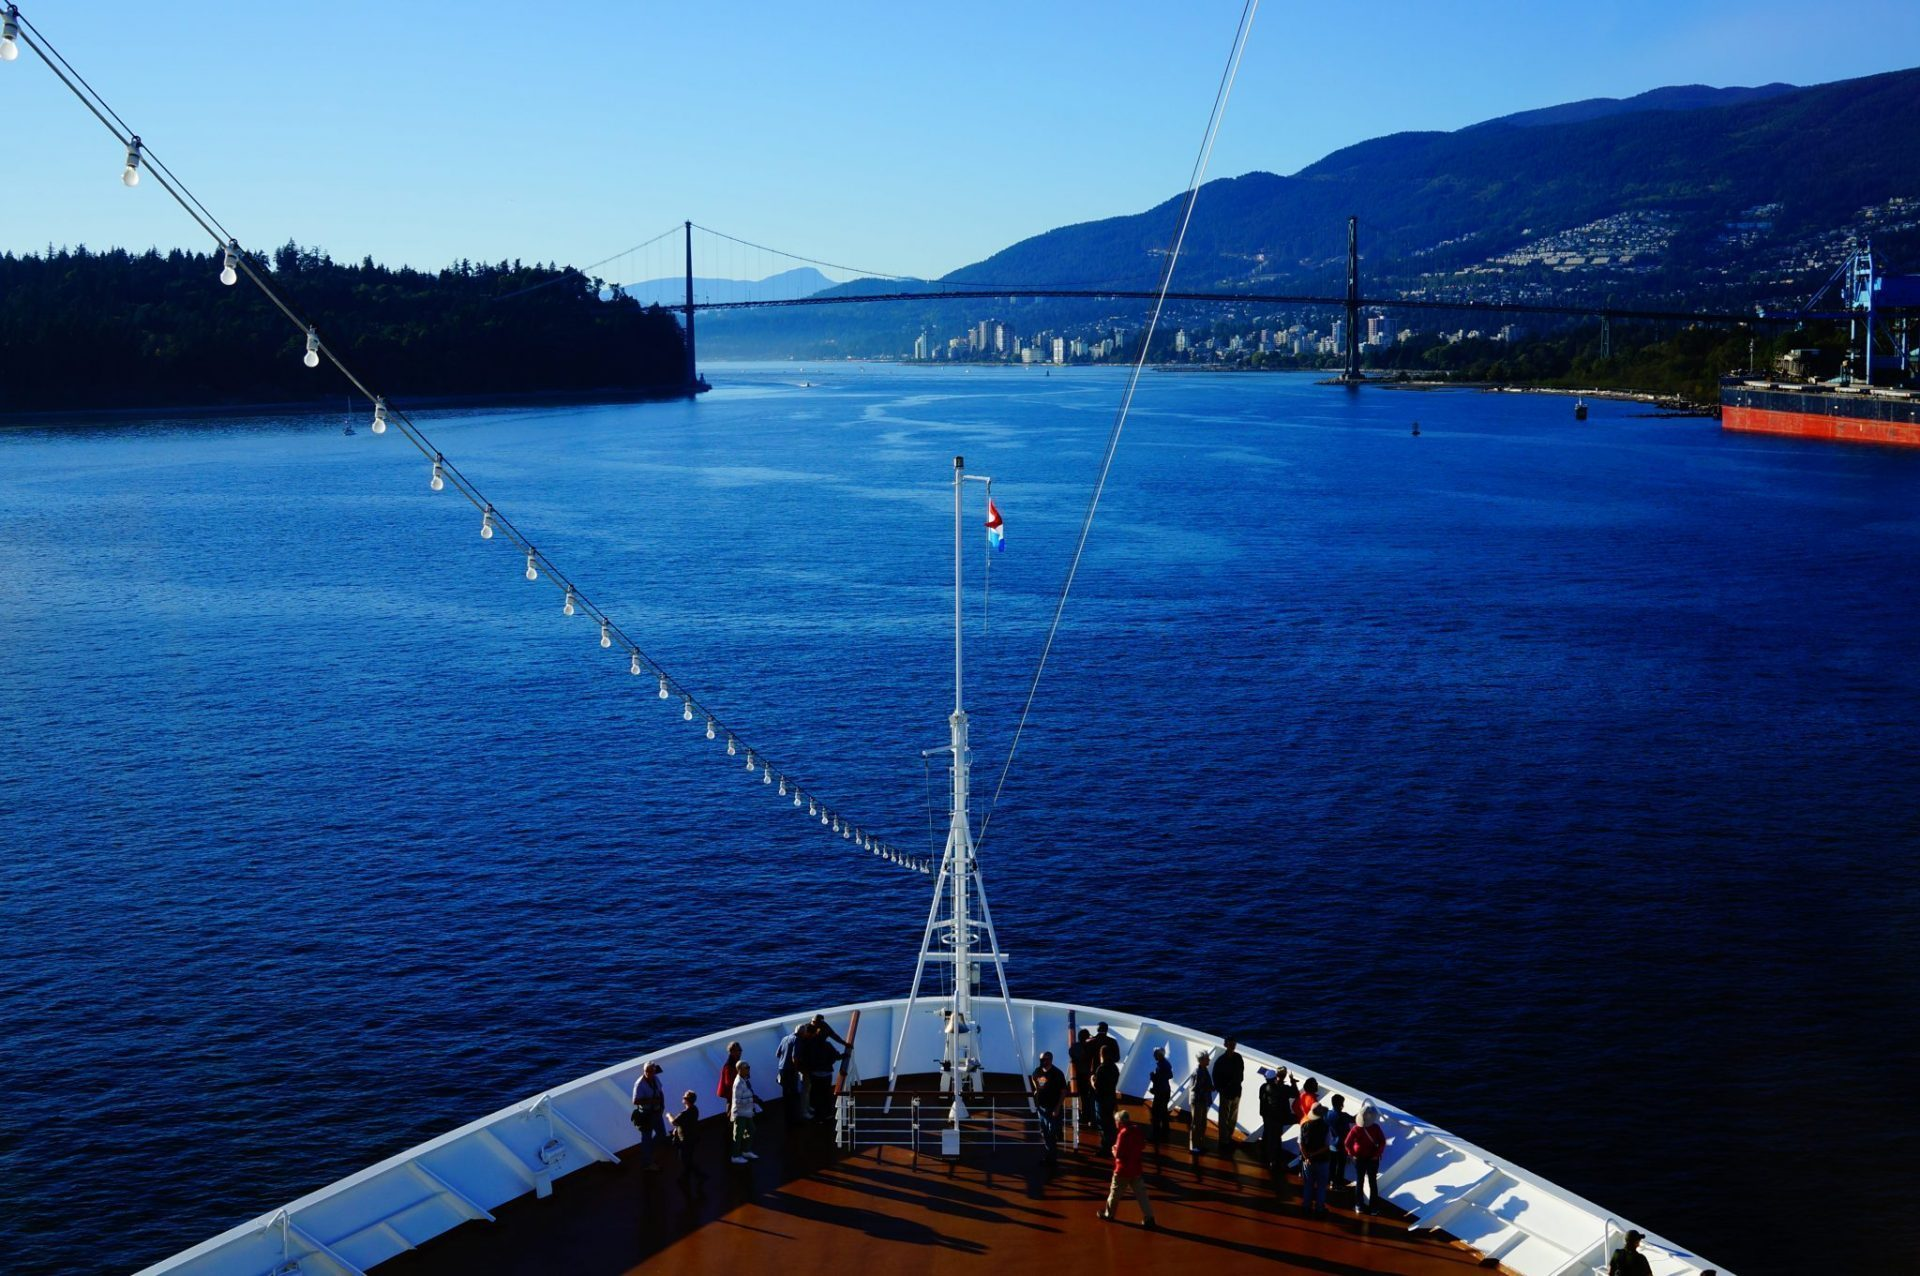 Departing Vancouver on transpacific Cruise, our first cheap world cruise segment